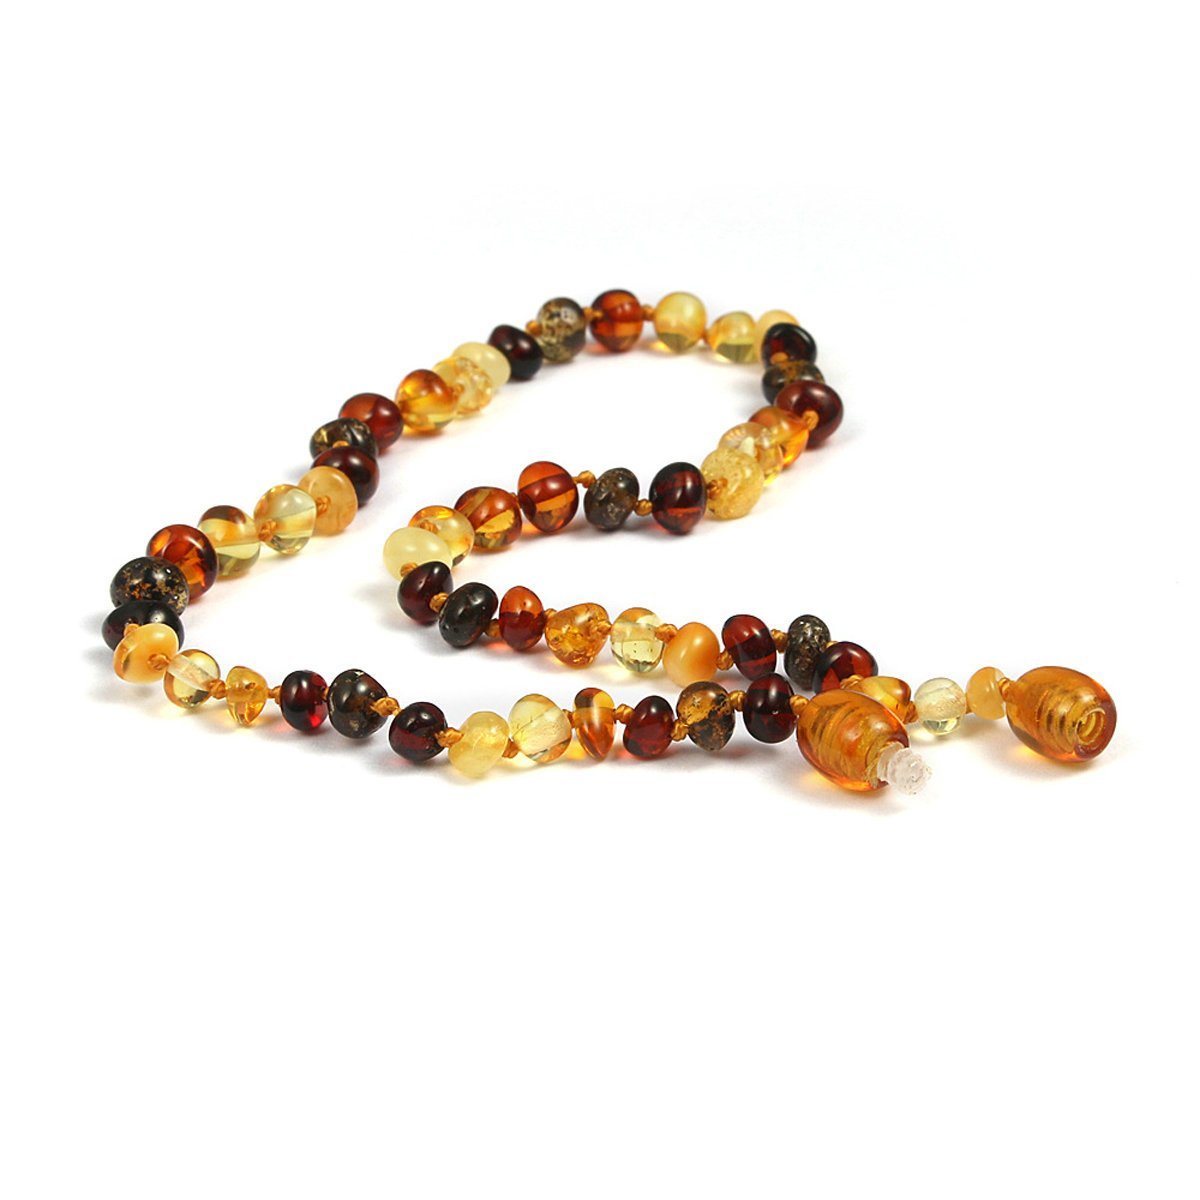 Teething Pain Relief for Your Baby Baltic Amber Teething Necklace | Teething Anklet by ANAZOZ